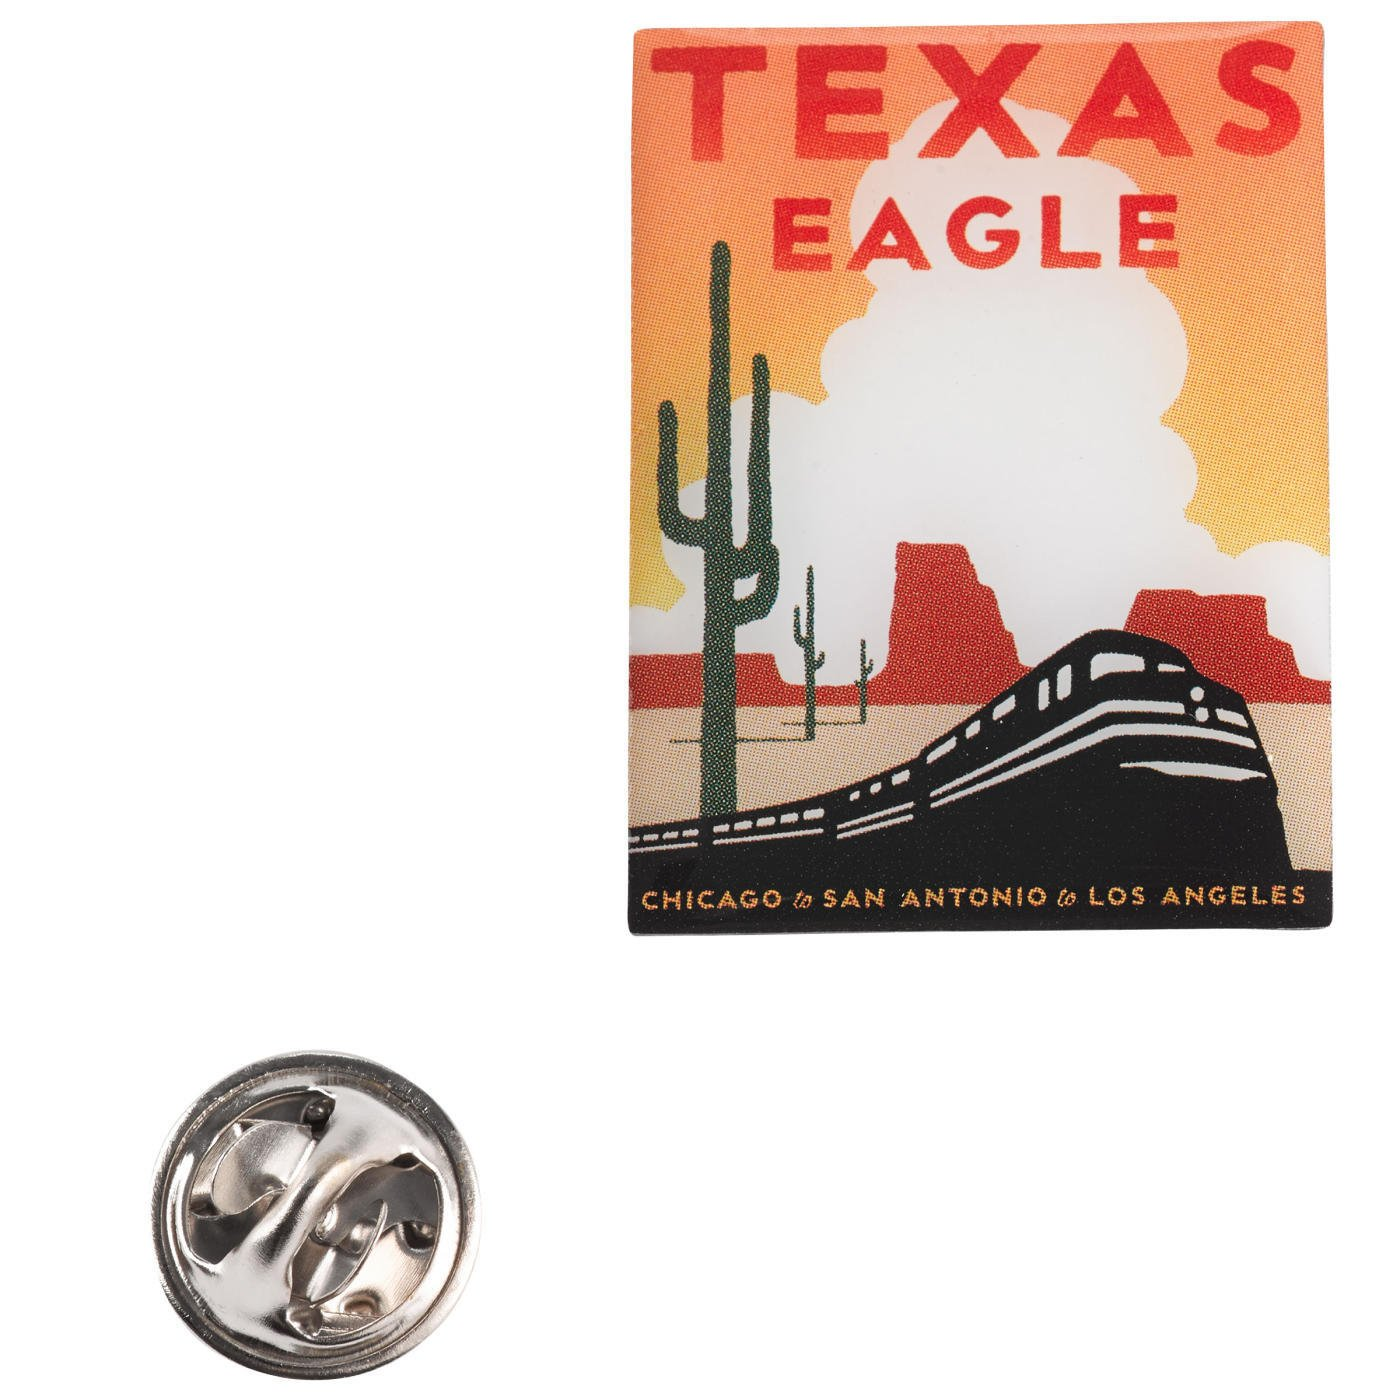 Amtrak Texas Eagle Collector Edition Michael Schwab Acrylic Lapel Hat Pin